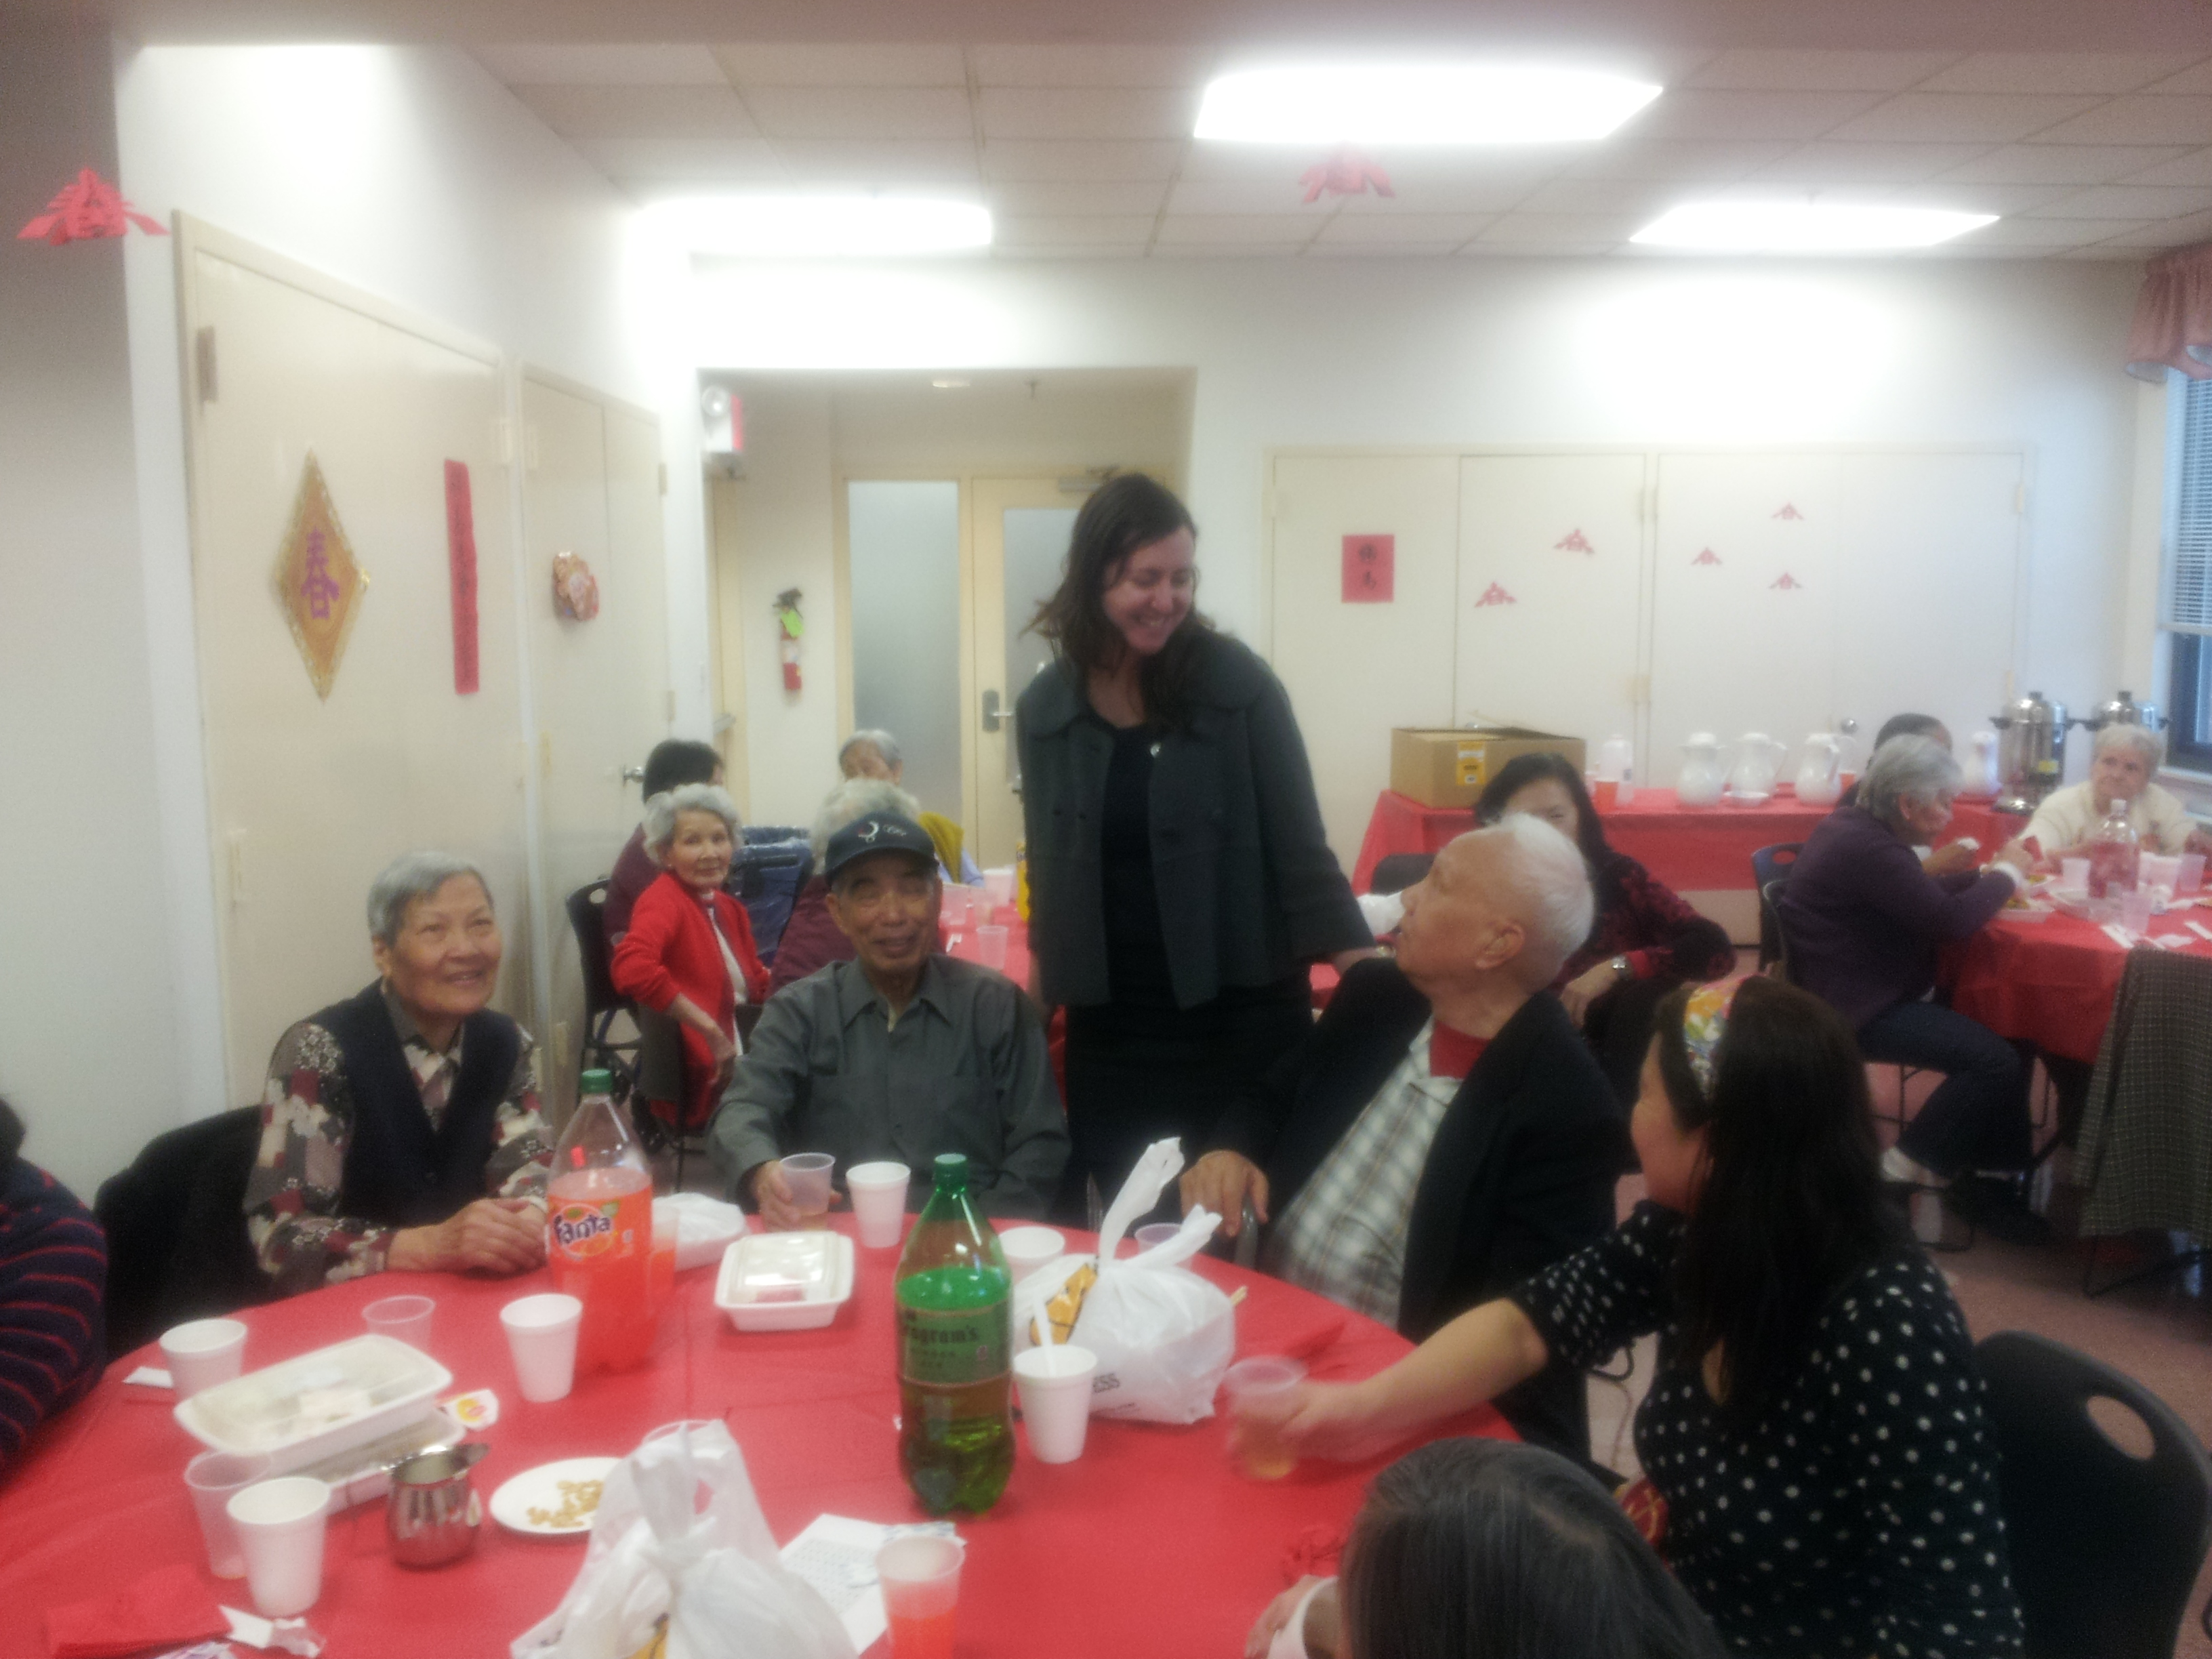 Assemblywoman Nily Rozic celebrates the Year of the Horse with seniors at Self Help Scheuer House in Flushing.